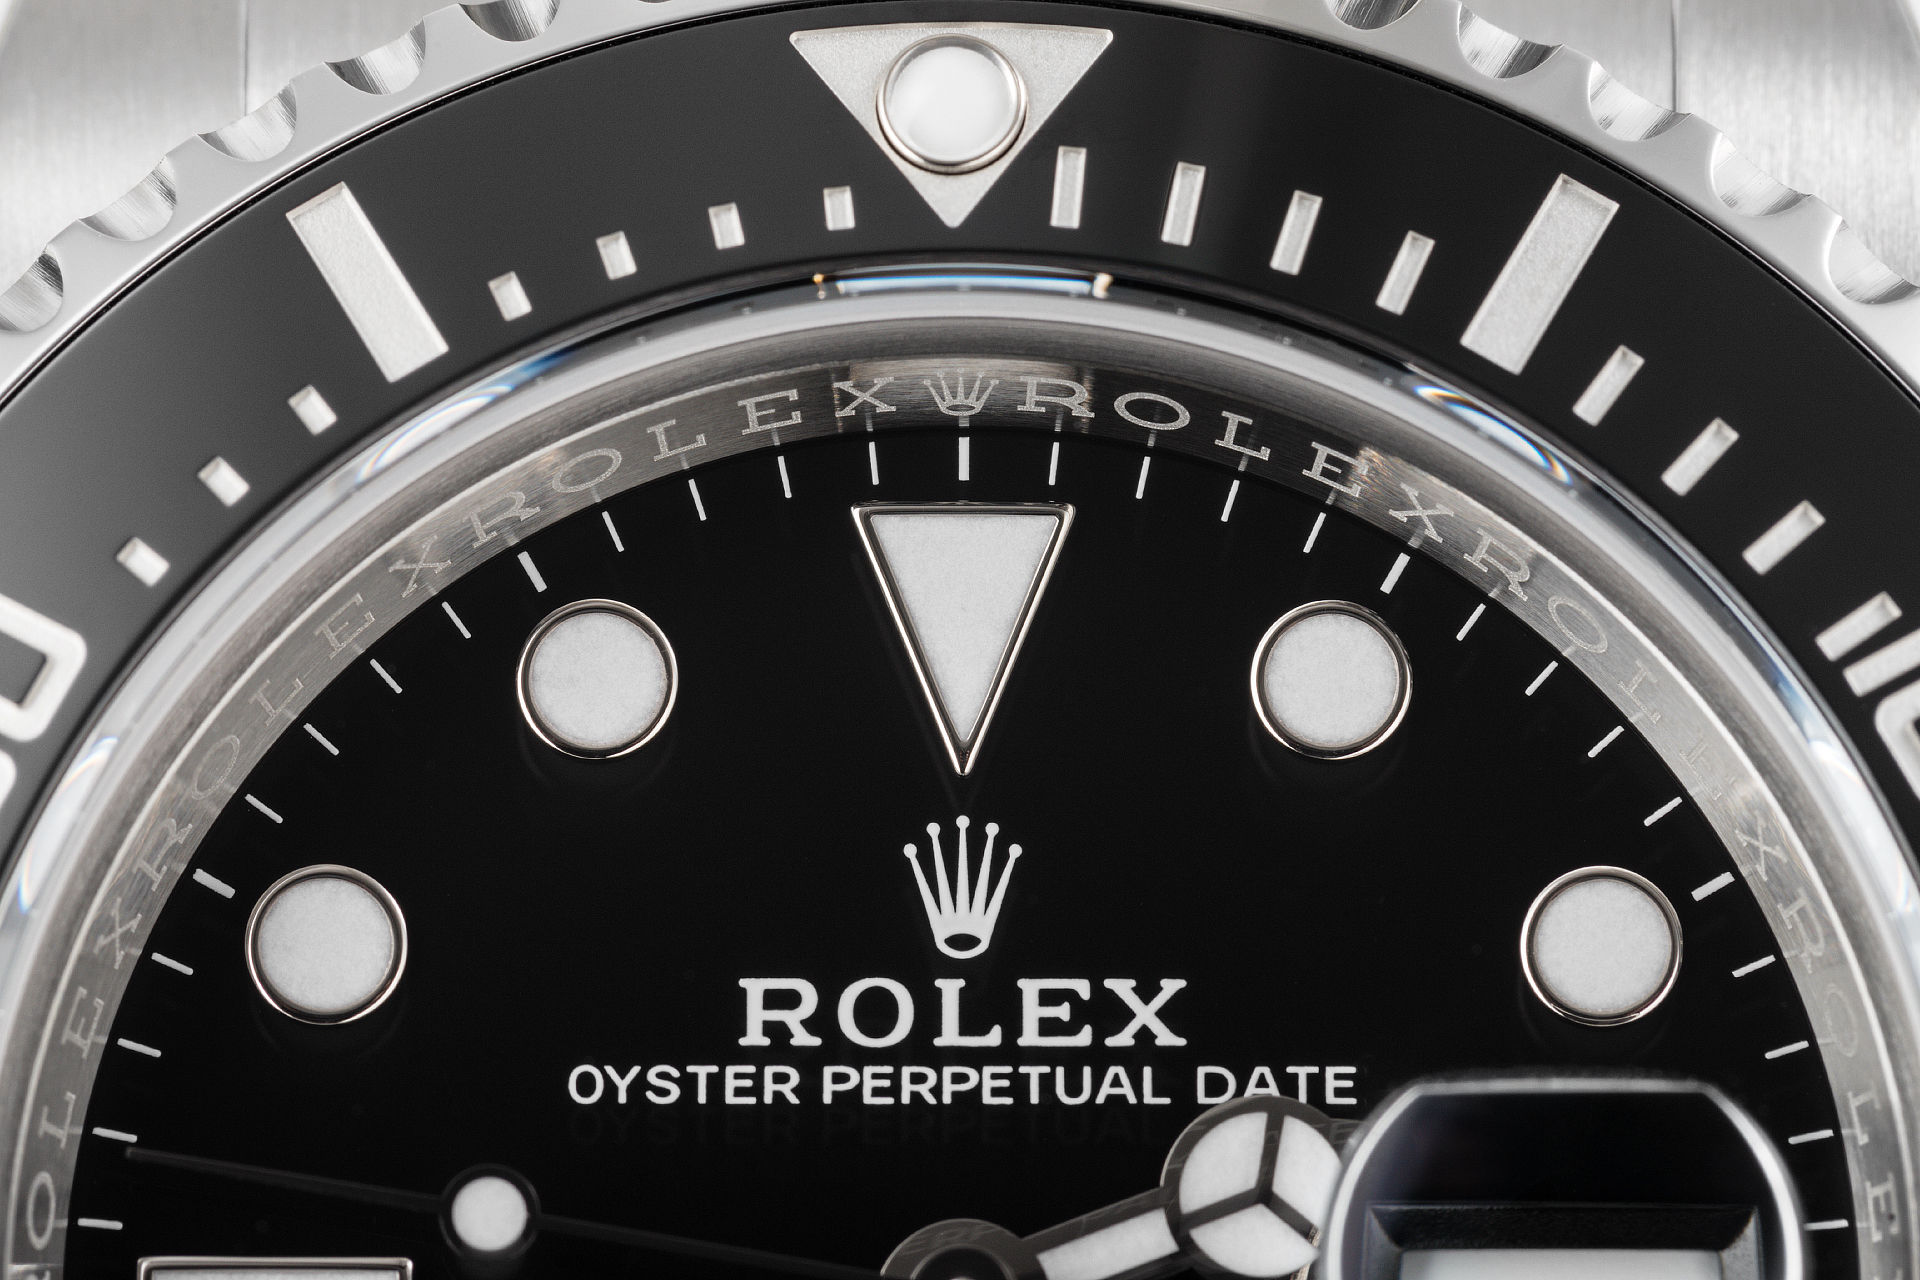 ref 126600 | 'Brand New' - 5 Year Warranty | Rolex Sea-Dweller